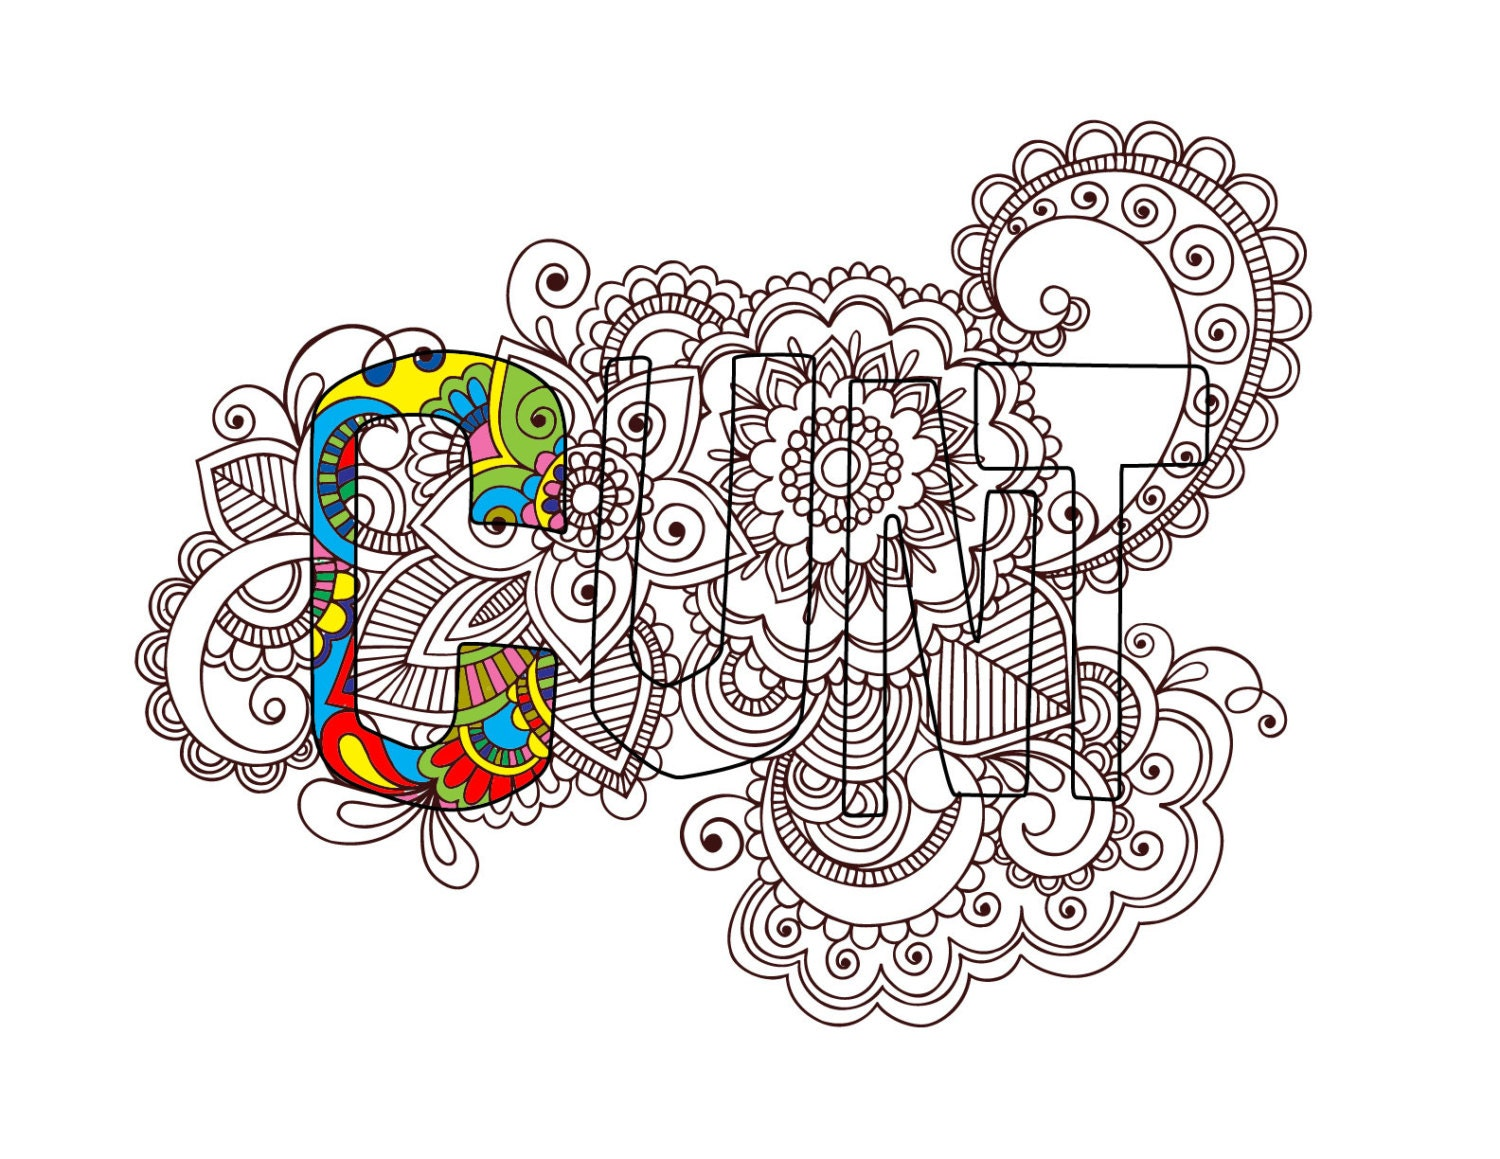 Coloring pages for adults curse words - Swear Coloring Page Cunt With Flower Ornaments Sweary Word Page Swearing Curse Page Adult Coloring Zentangle